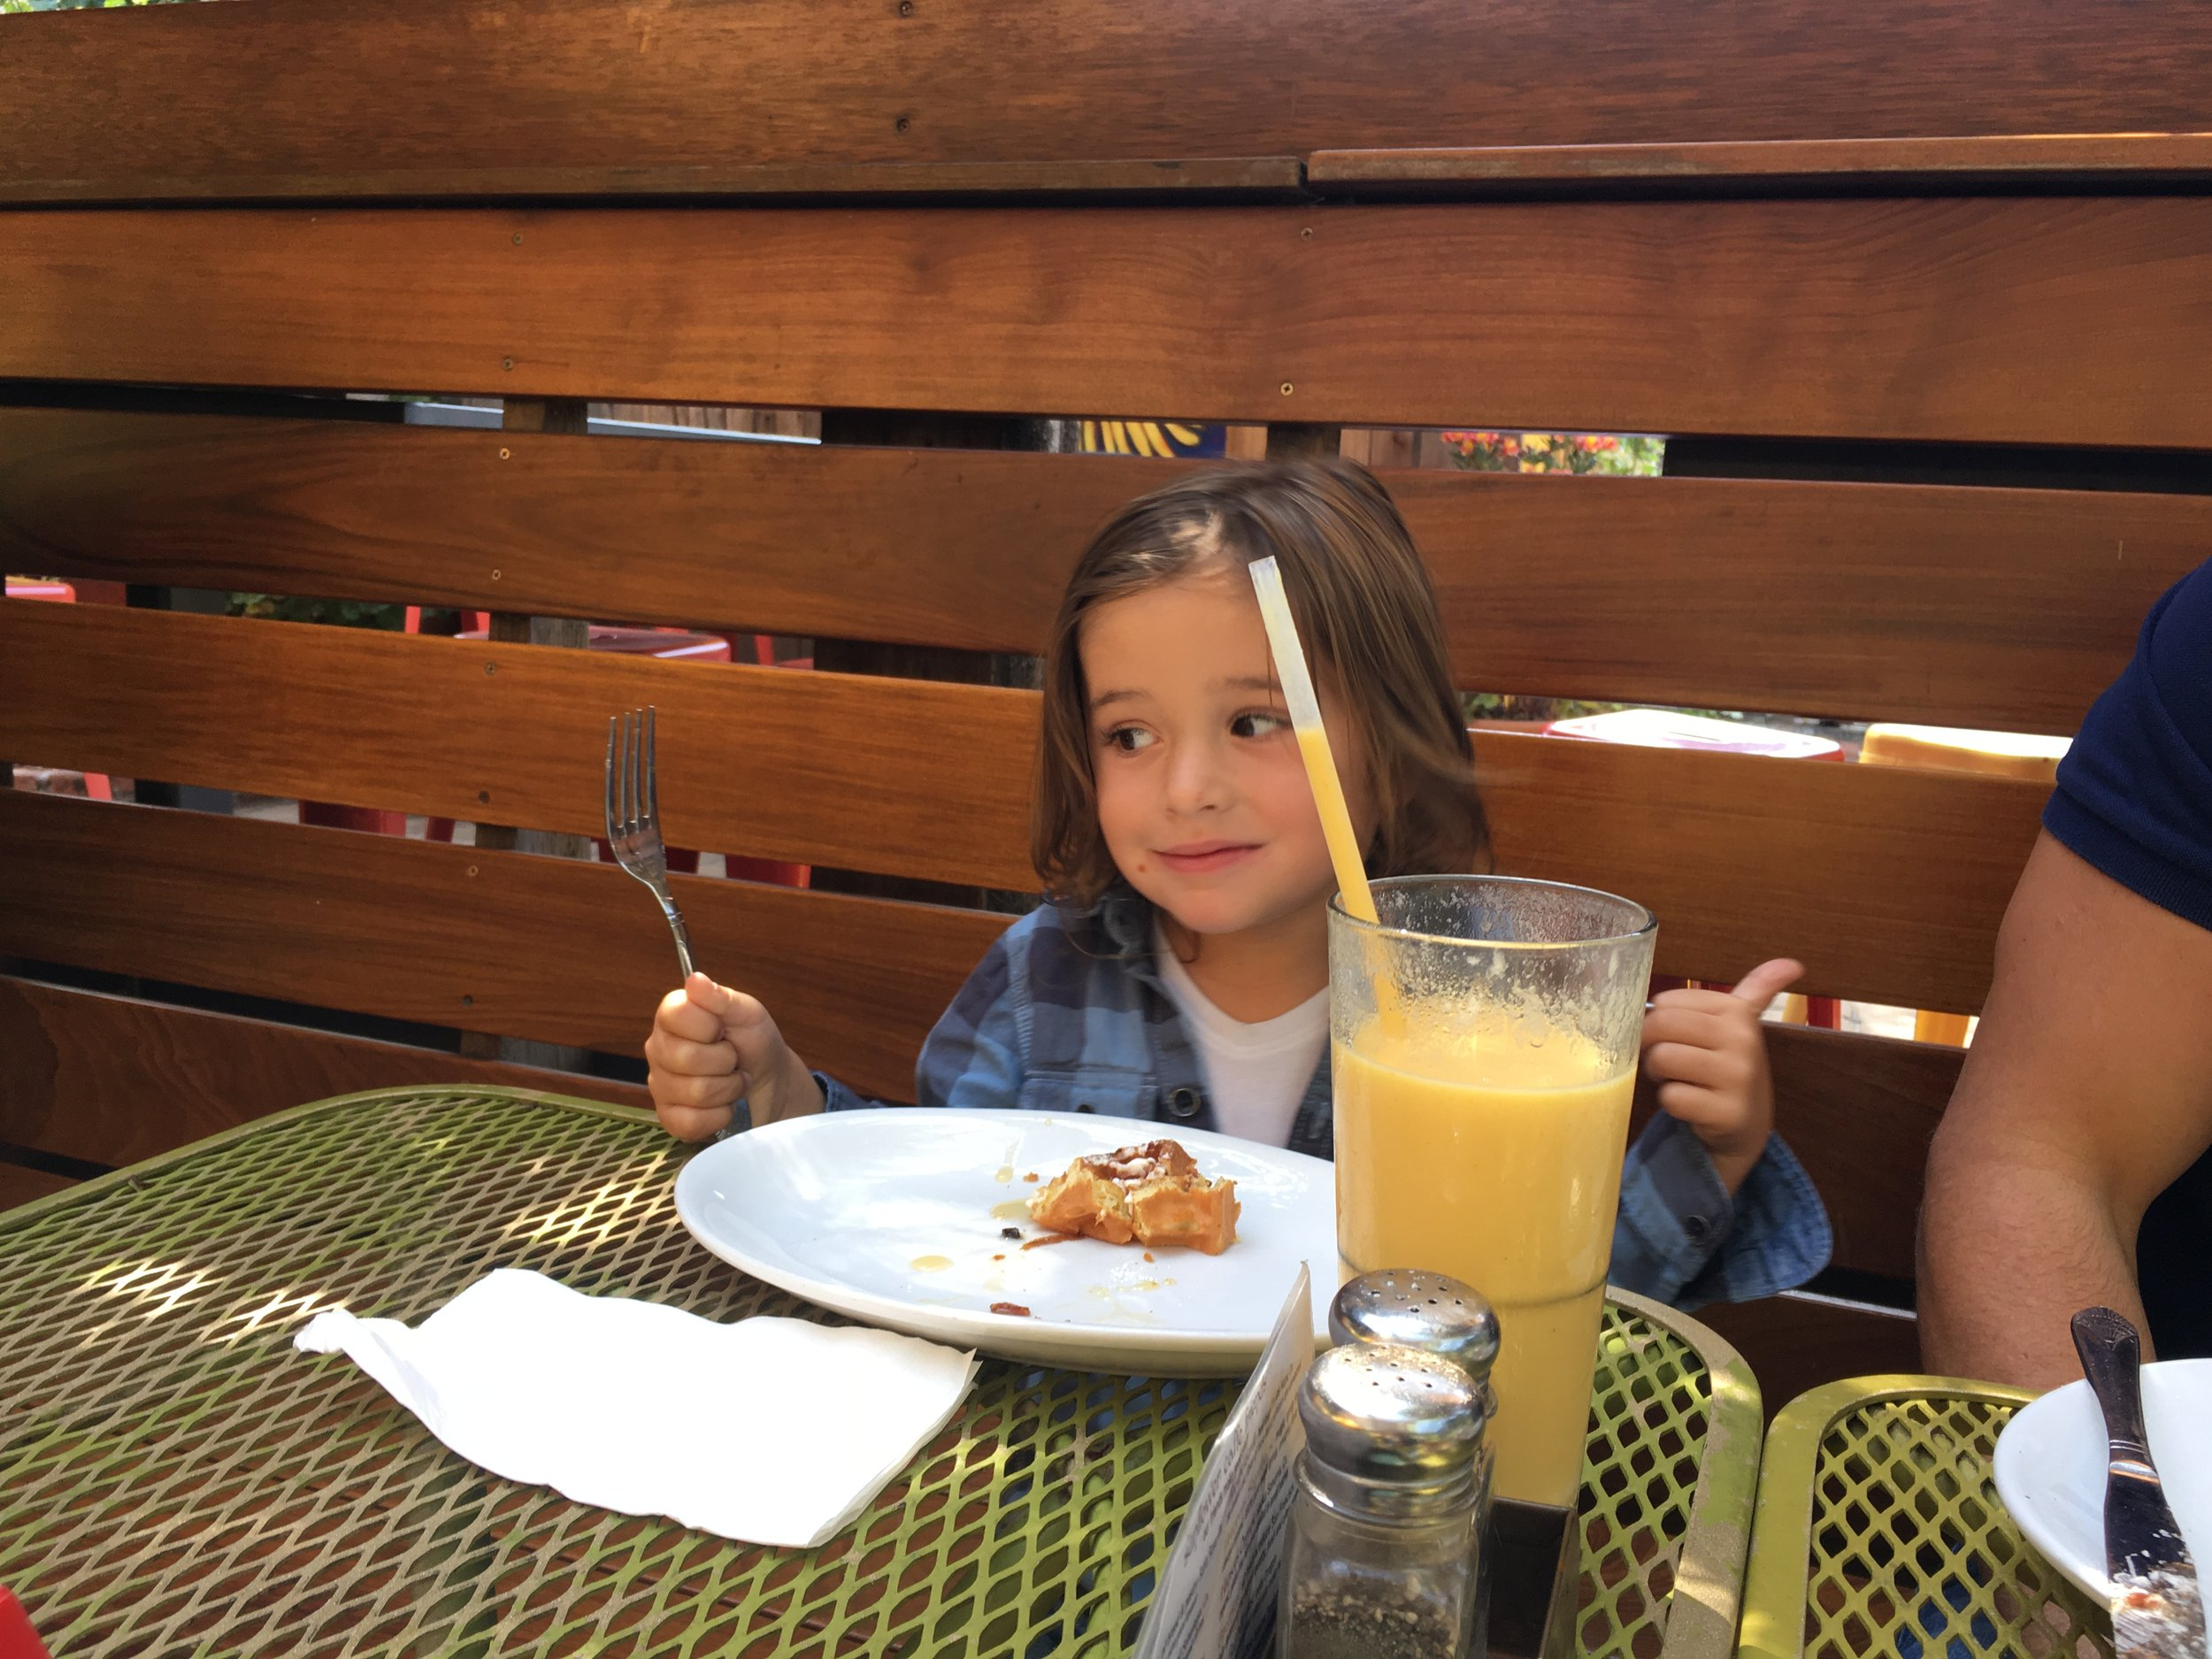 Smoothie and pancakes at Sunflower Cafe.